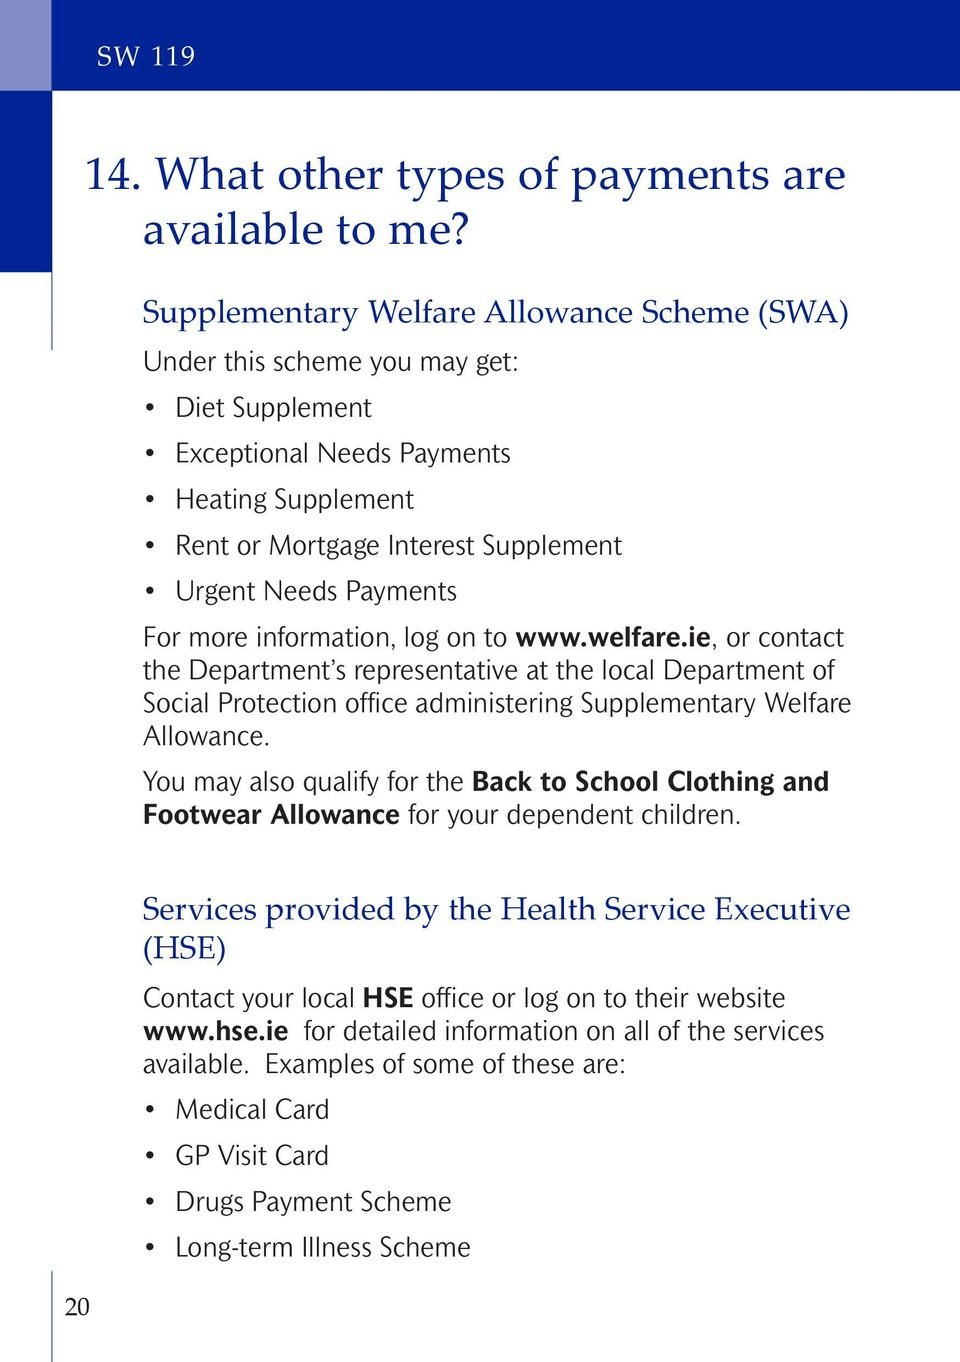 For more information, log on to www.welfare.ie, or contact the Department s representative at the local Department of Social Protection office administering Supplementary Welfare Allowance.